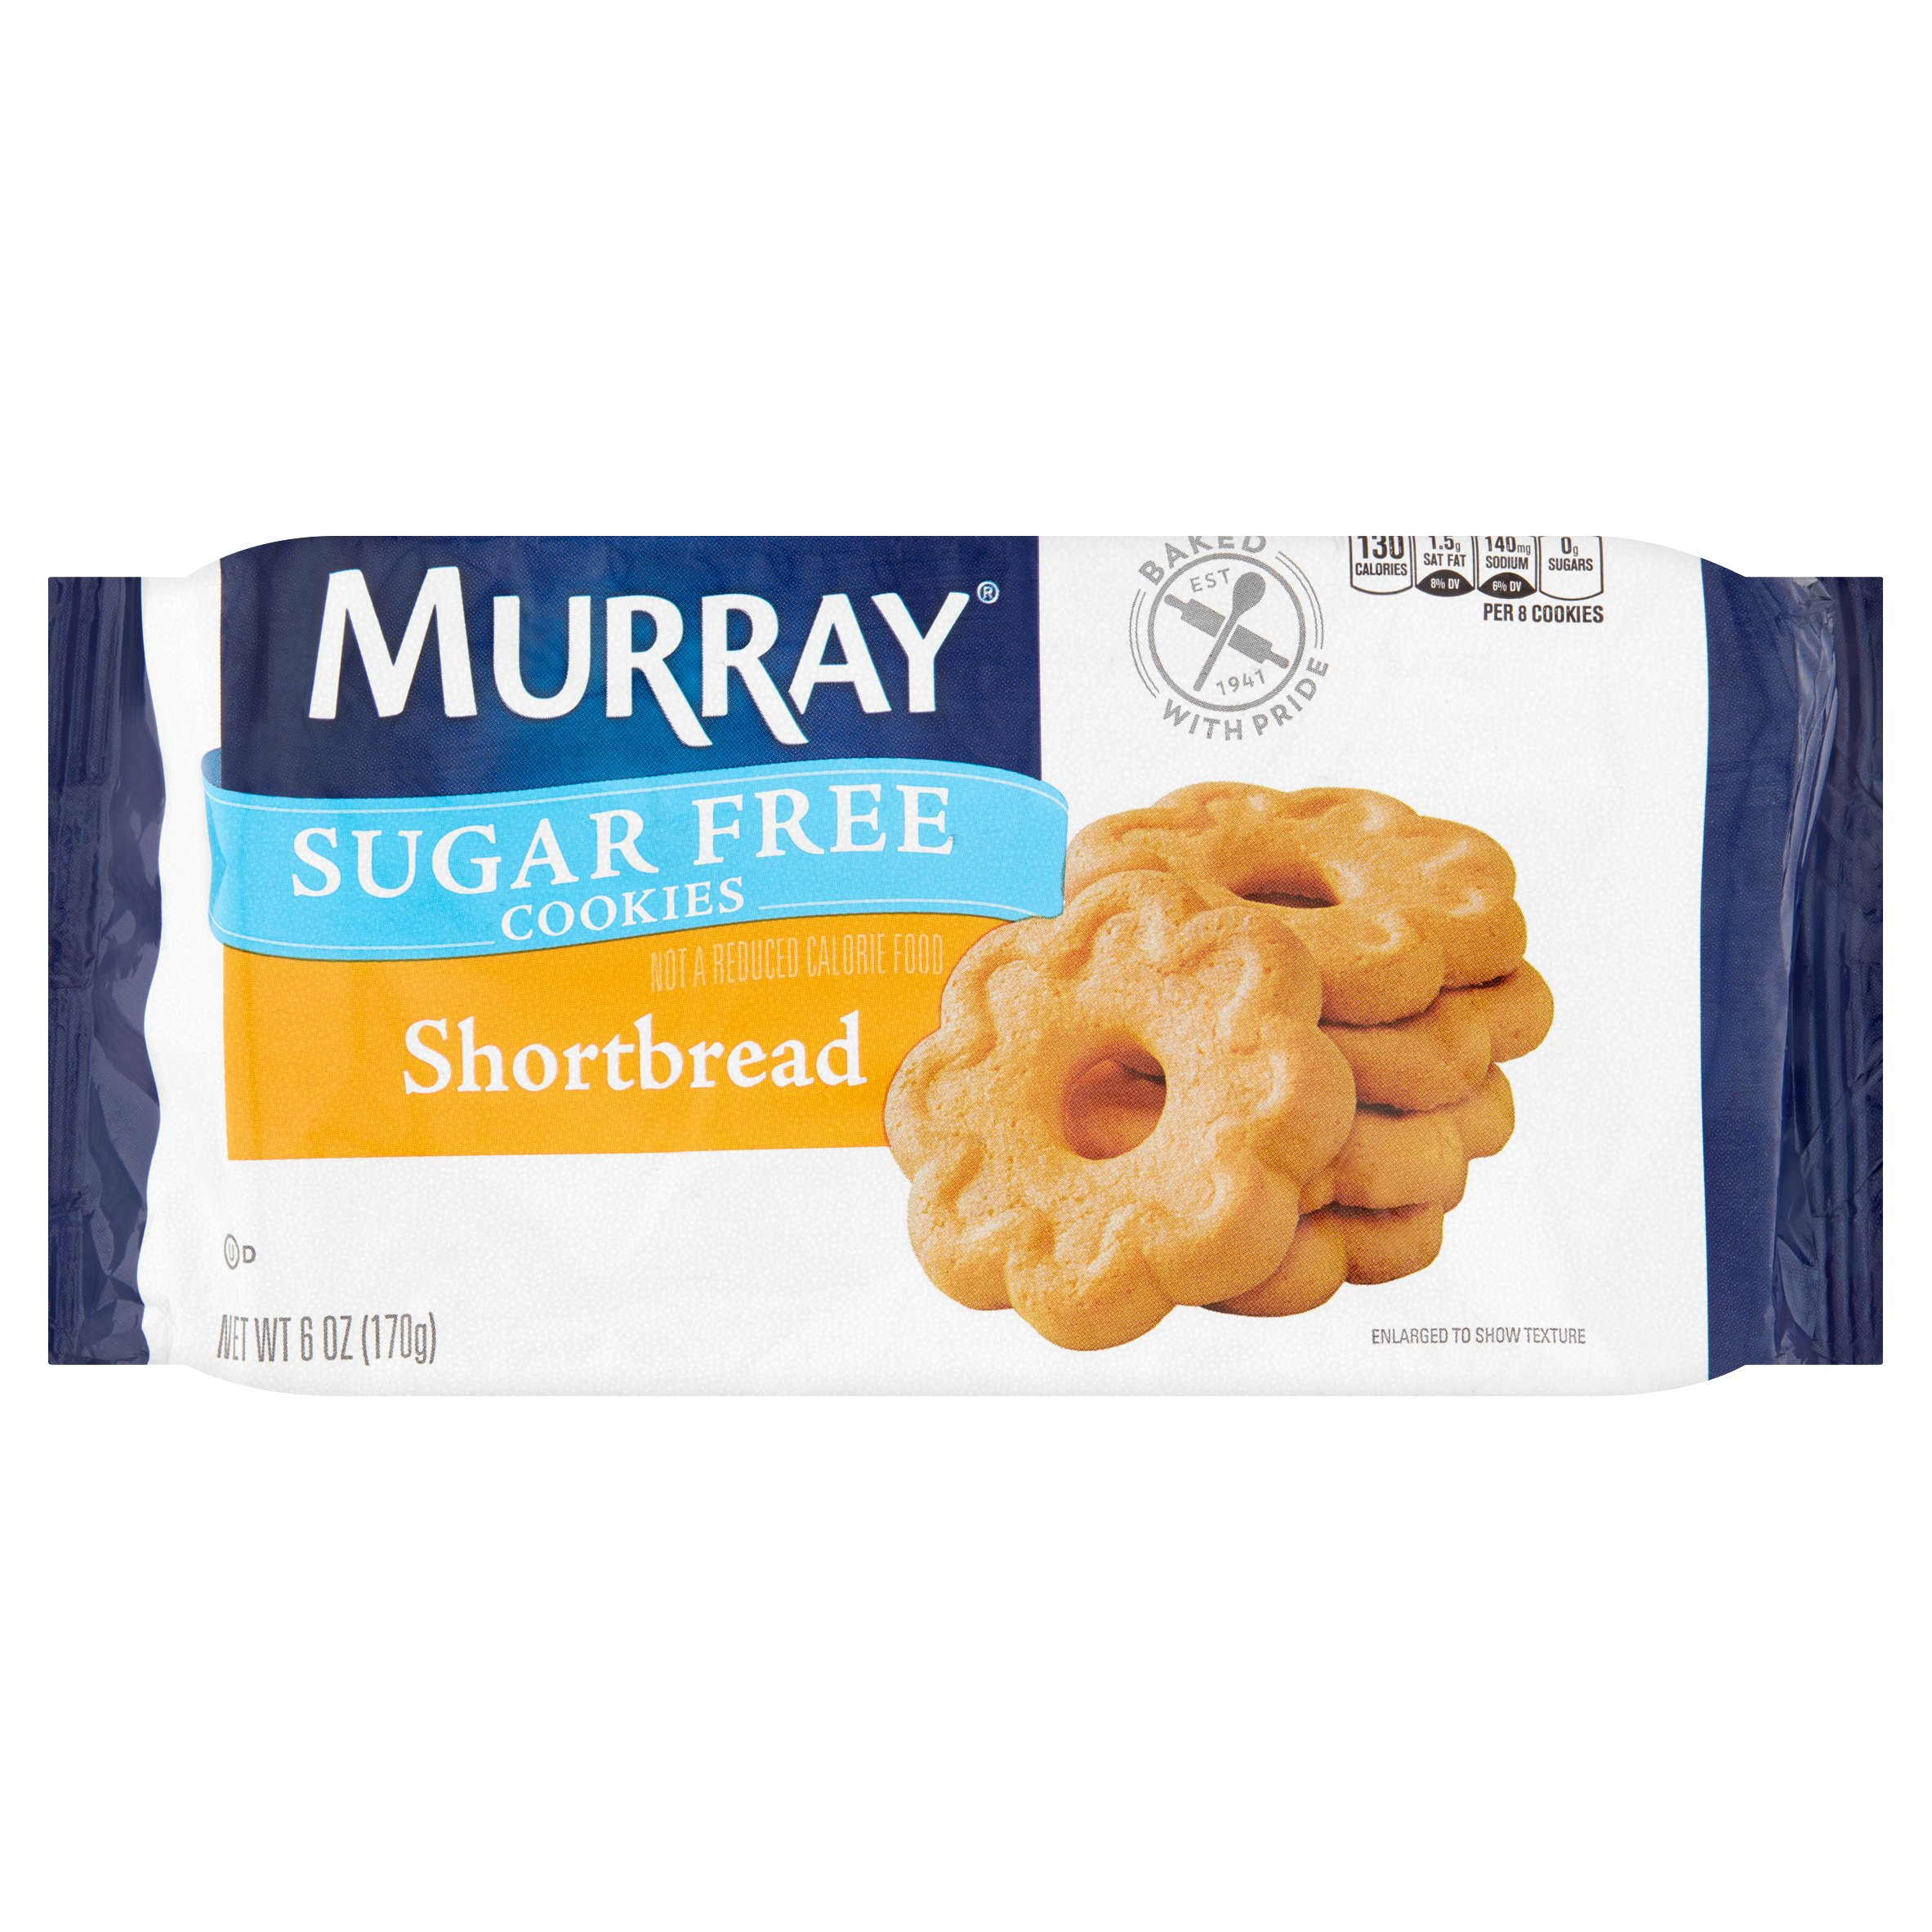 Murray Sugar Free Shortbread Cookies, 6 oz by Murray Biscuit Company